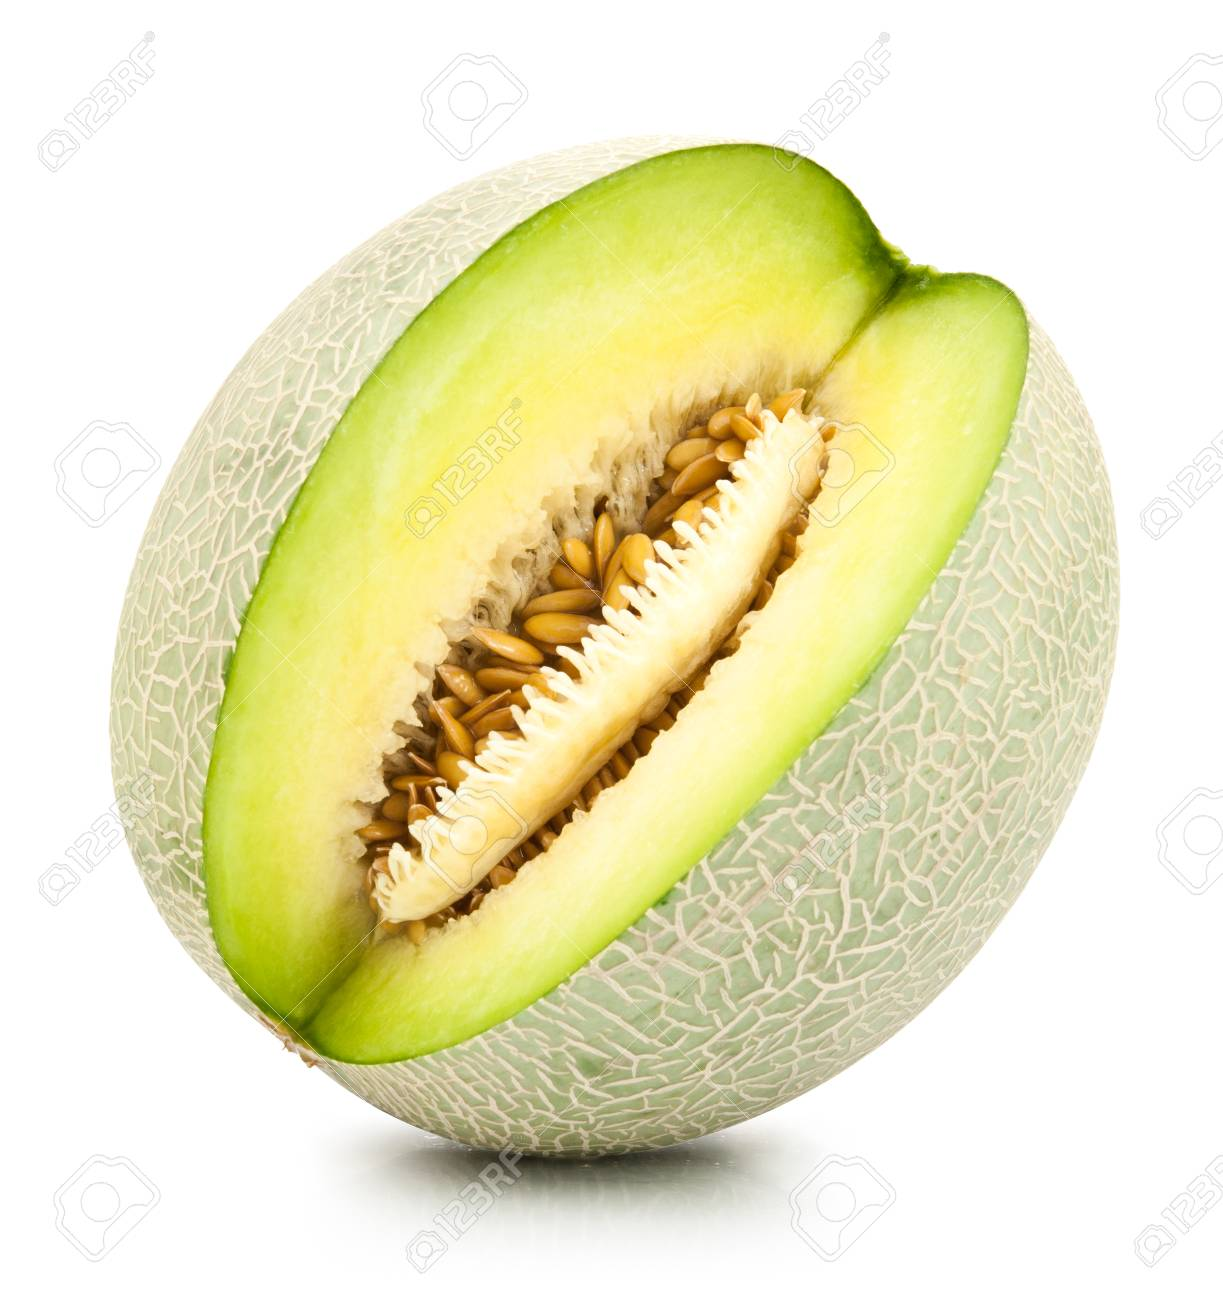 Green Cantelope – Melon cantaloupe isolated on white background.